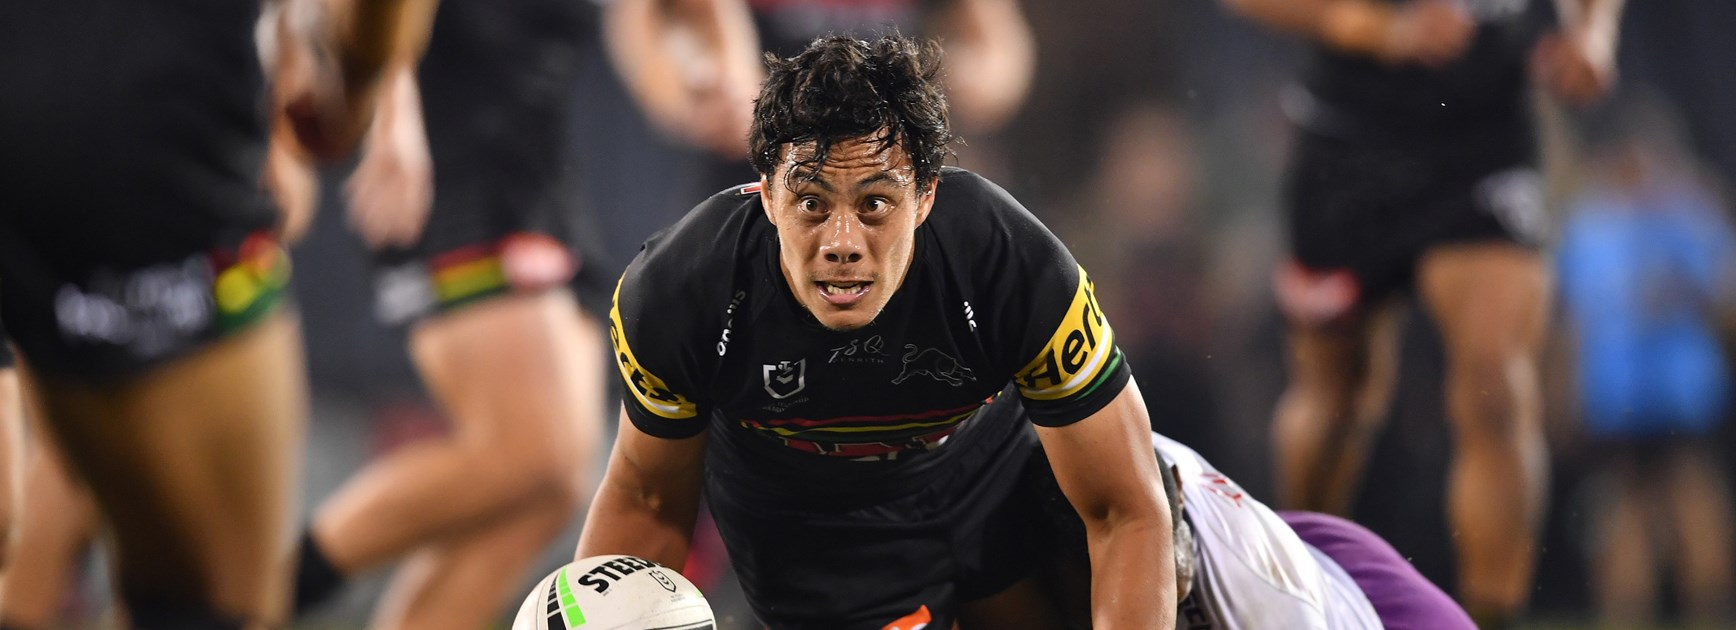 Luai cops dangerous contact charge